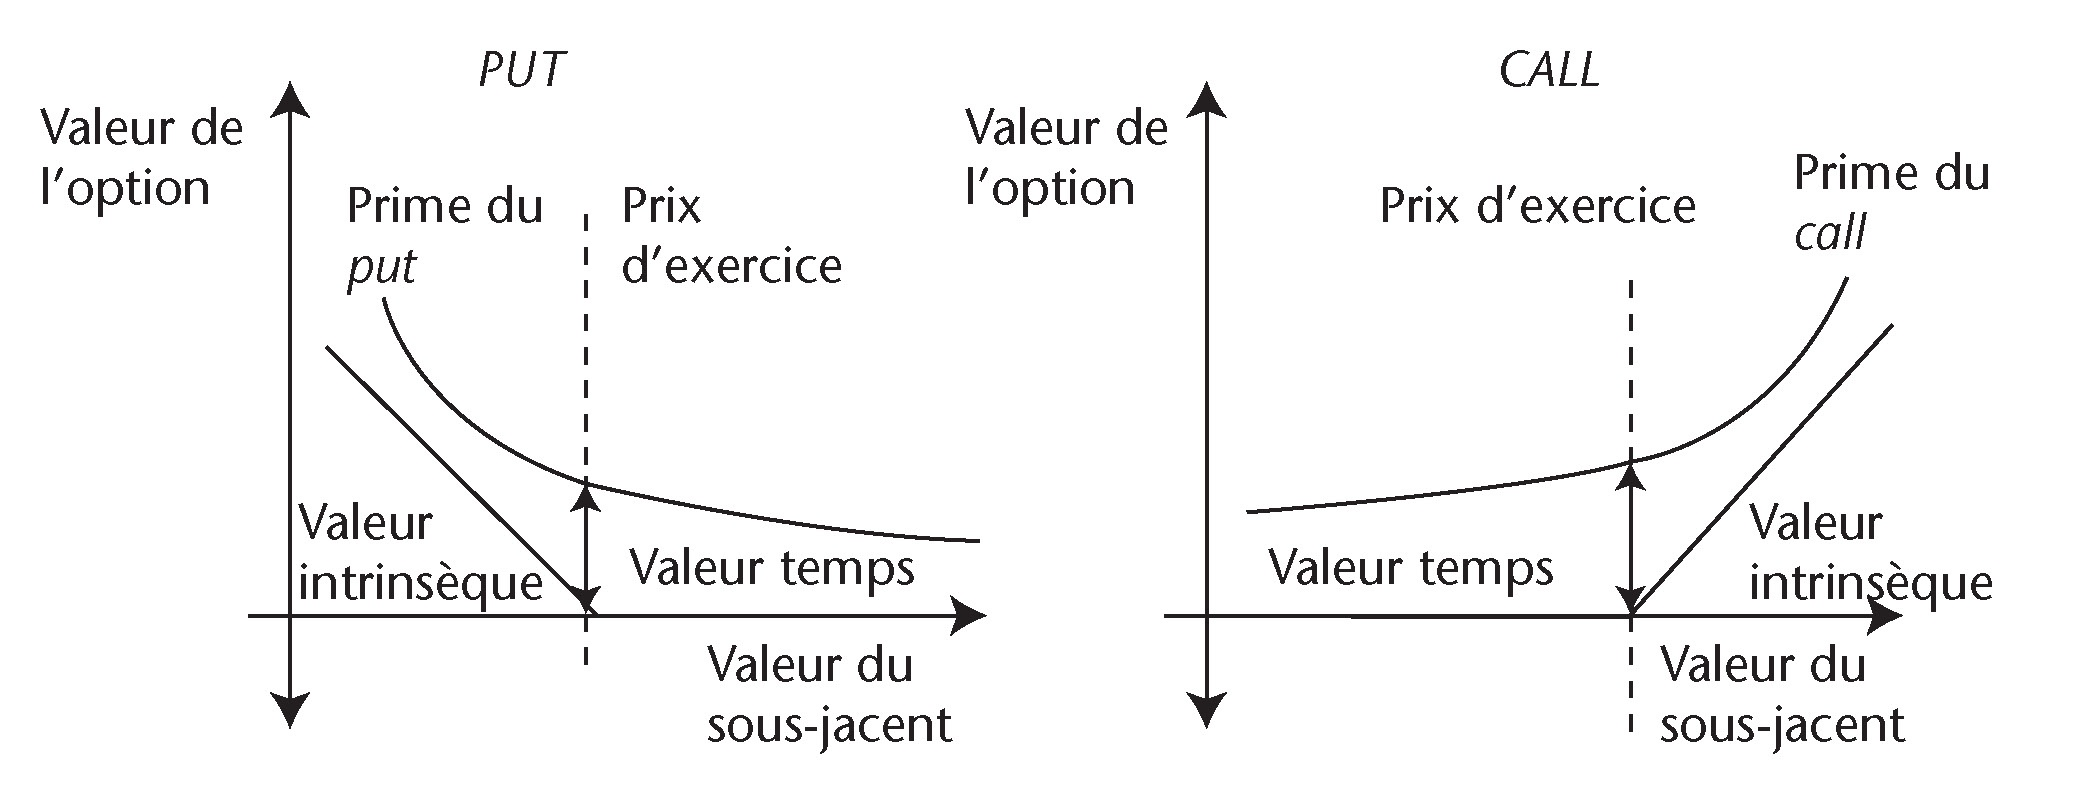 Le pricing d'une option vanille